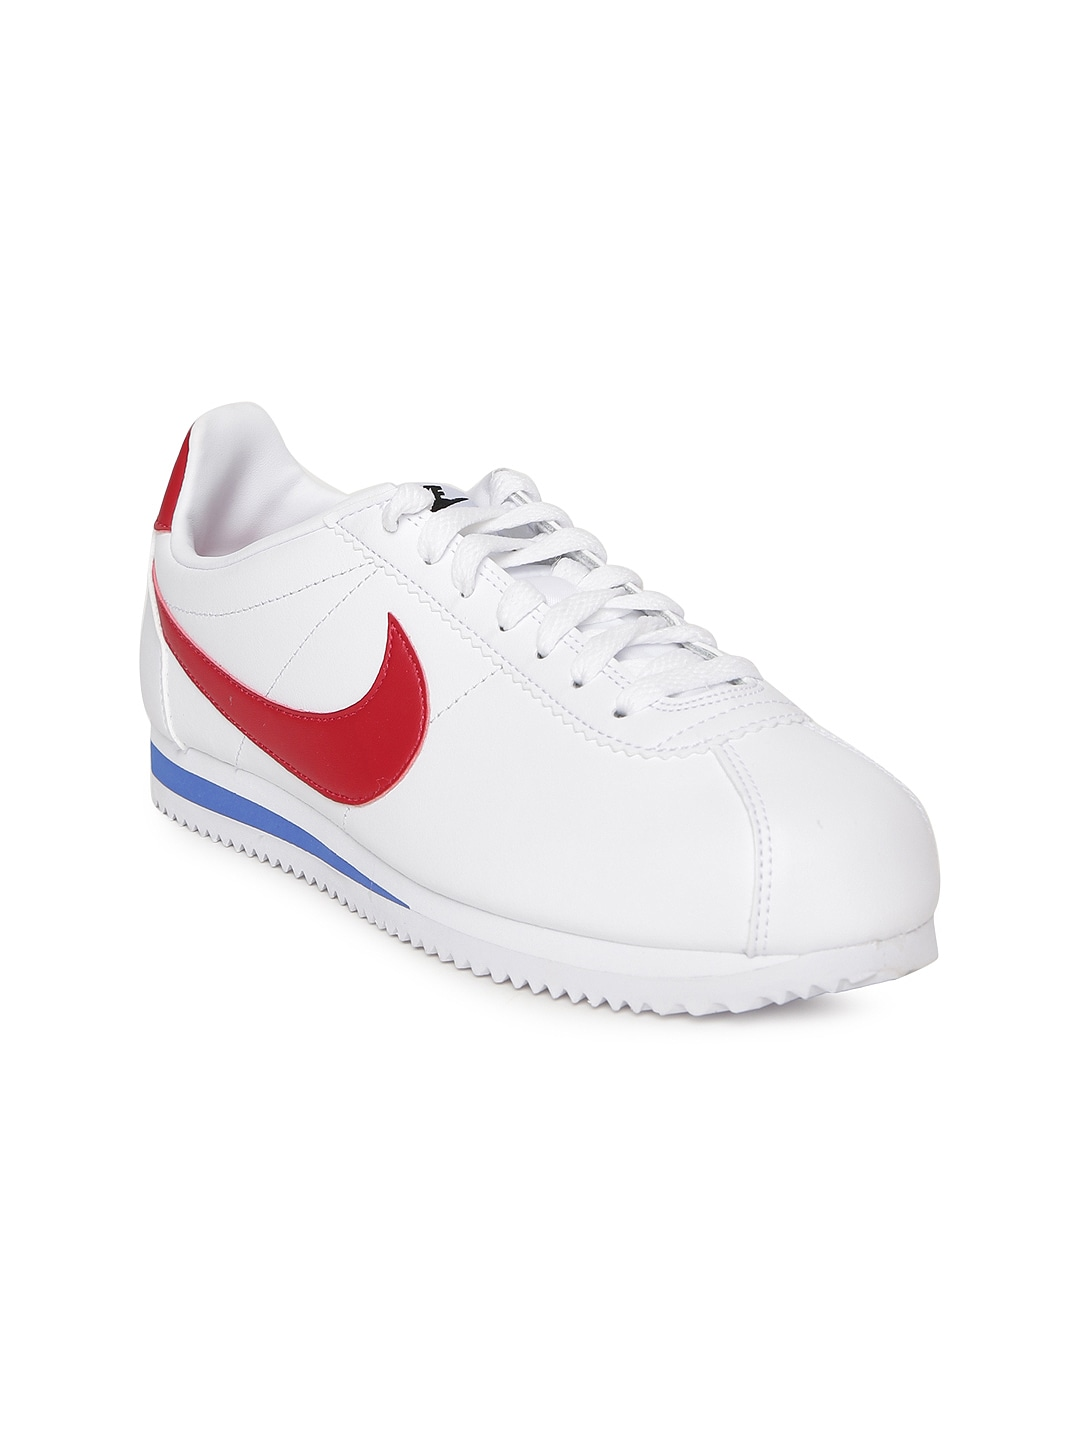 timeless design a19e0 65402 Nike Sneaker - Buy Nike Sneaker online in India